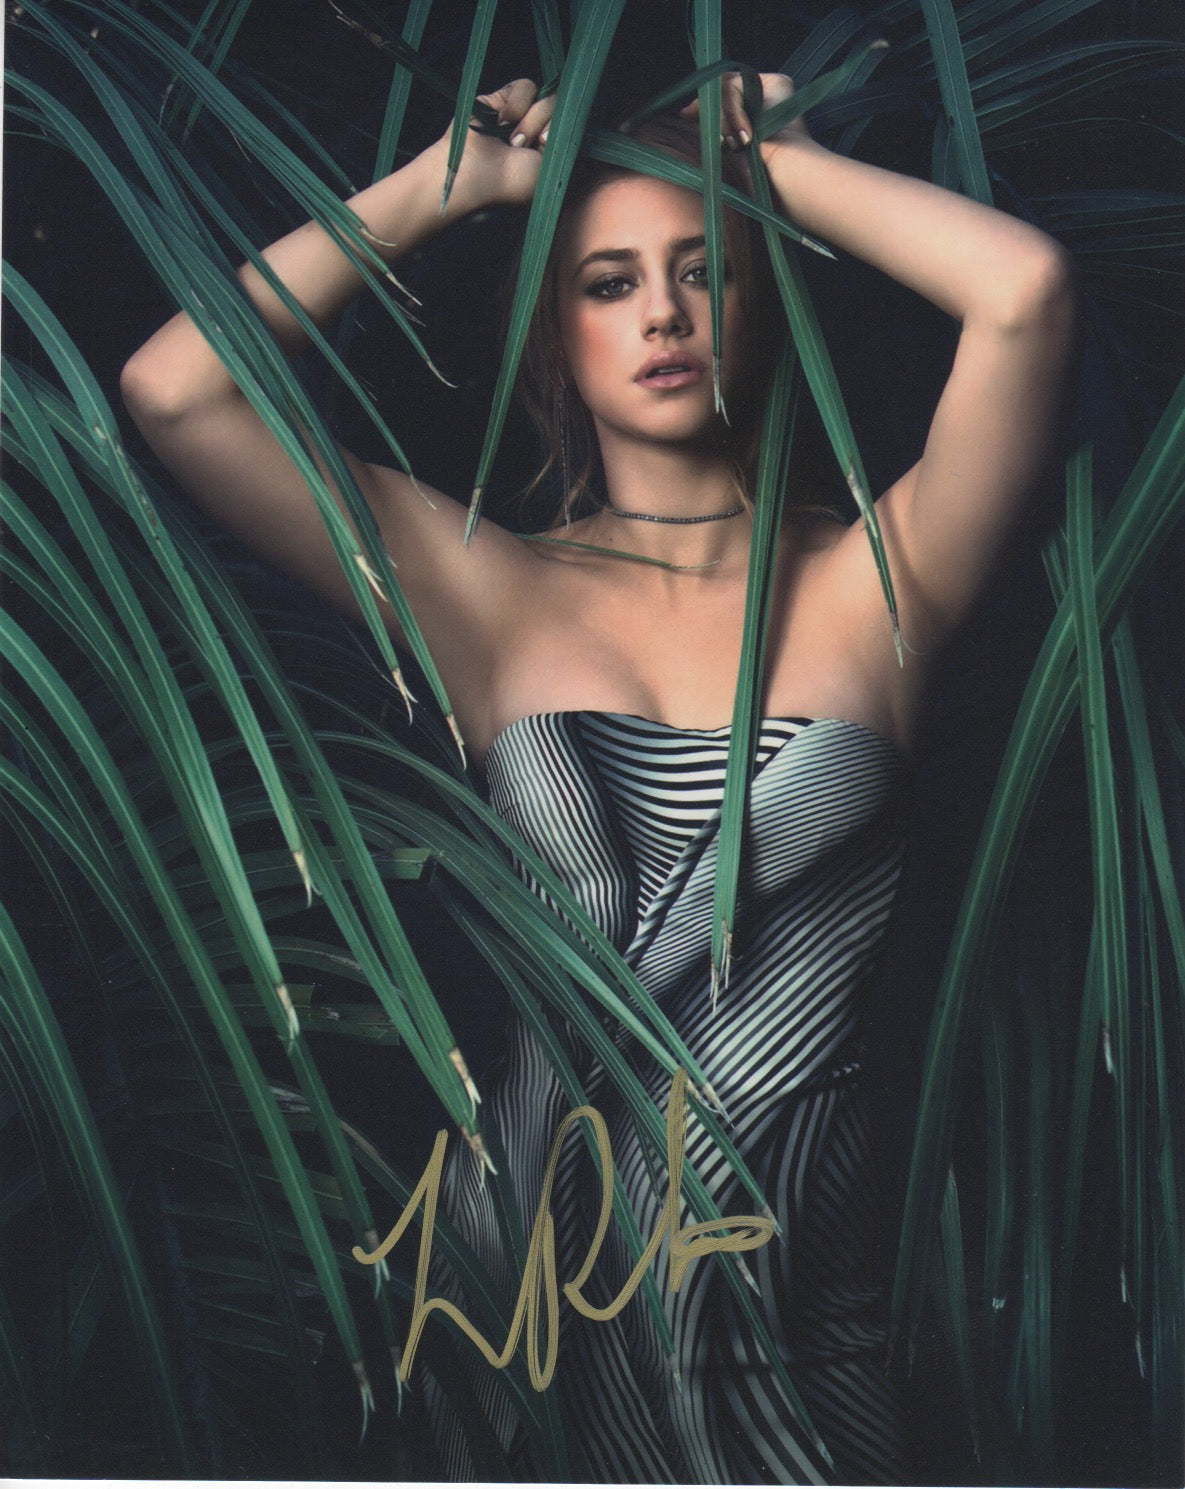 Lili Reinhart Riverdale Signed Autograph 8x10 Photo #5